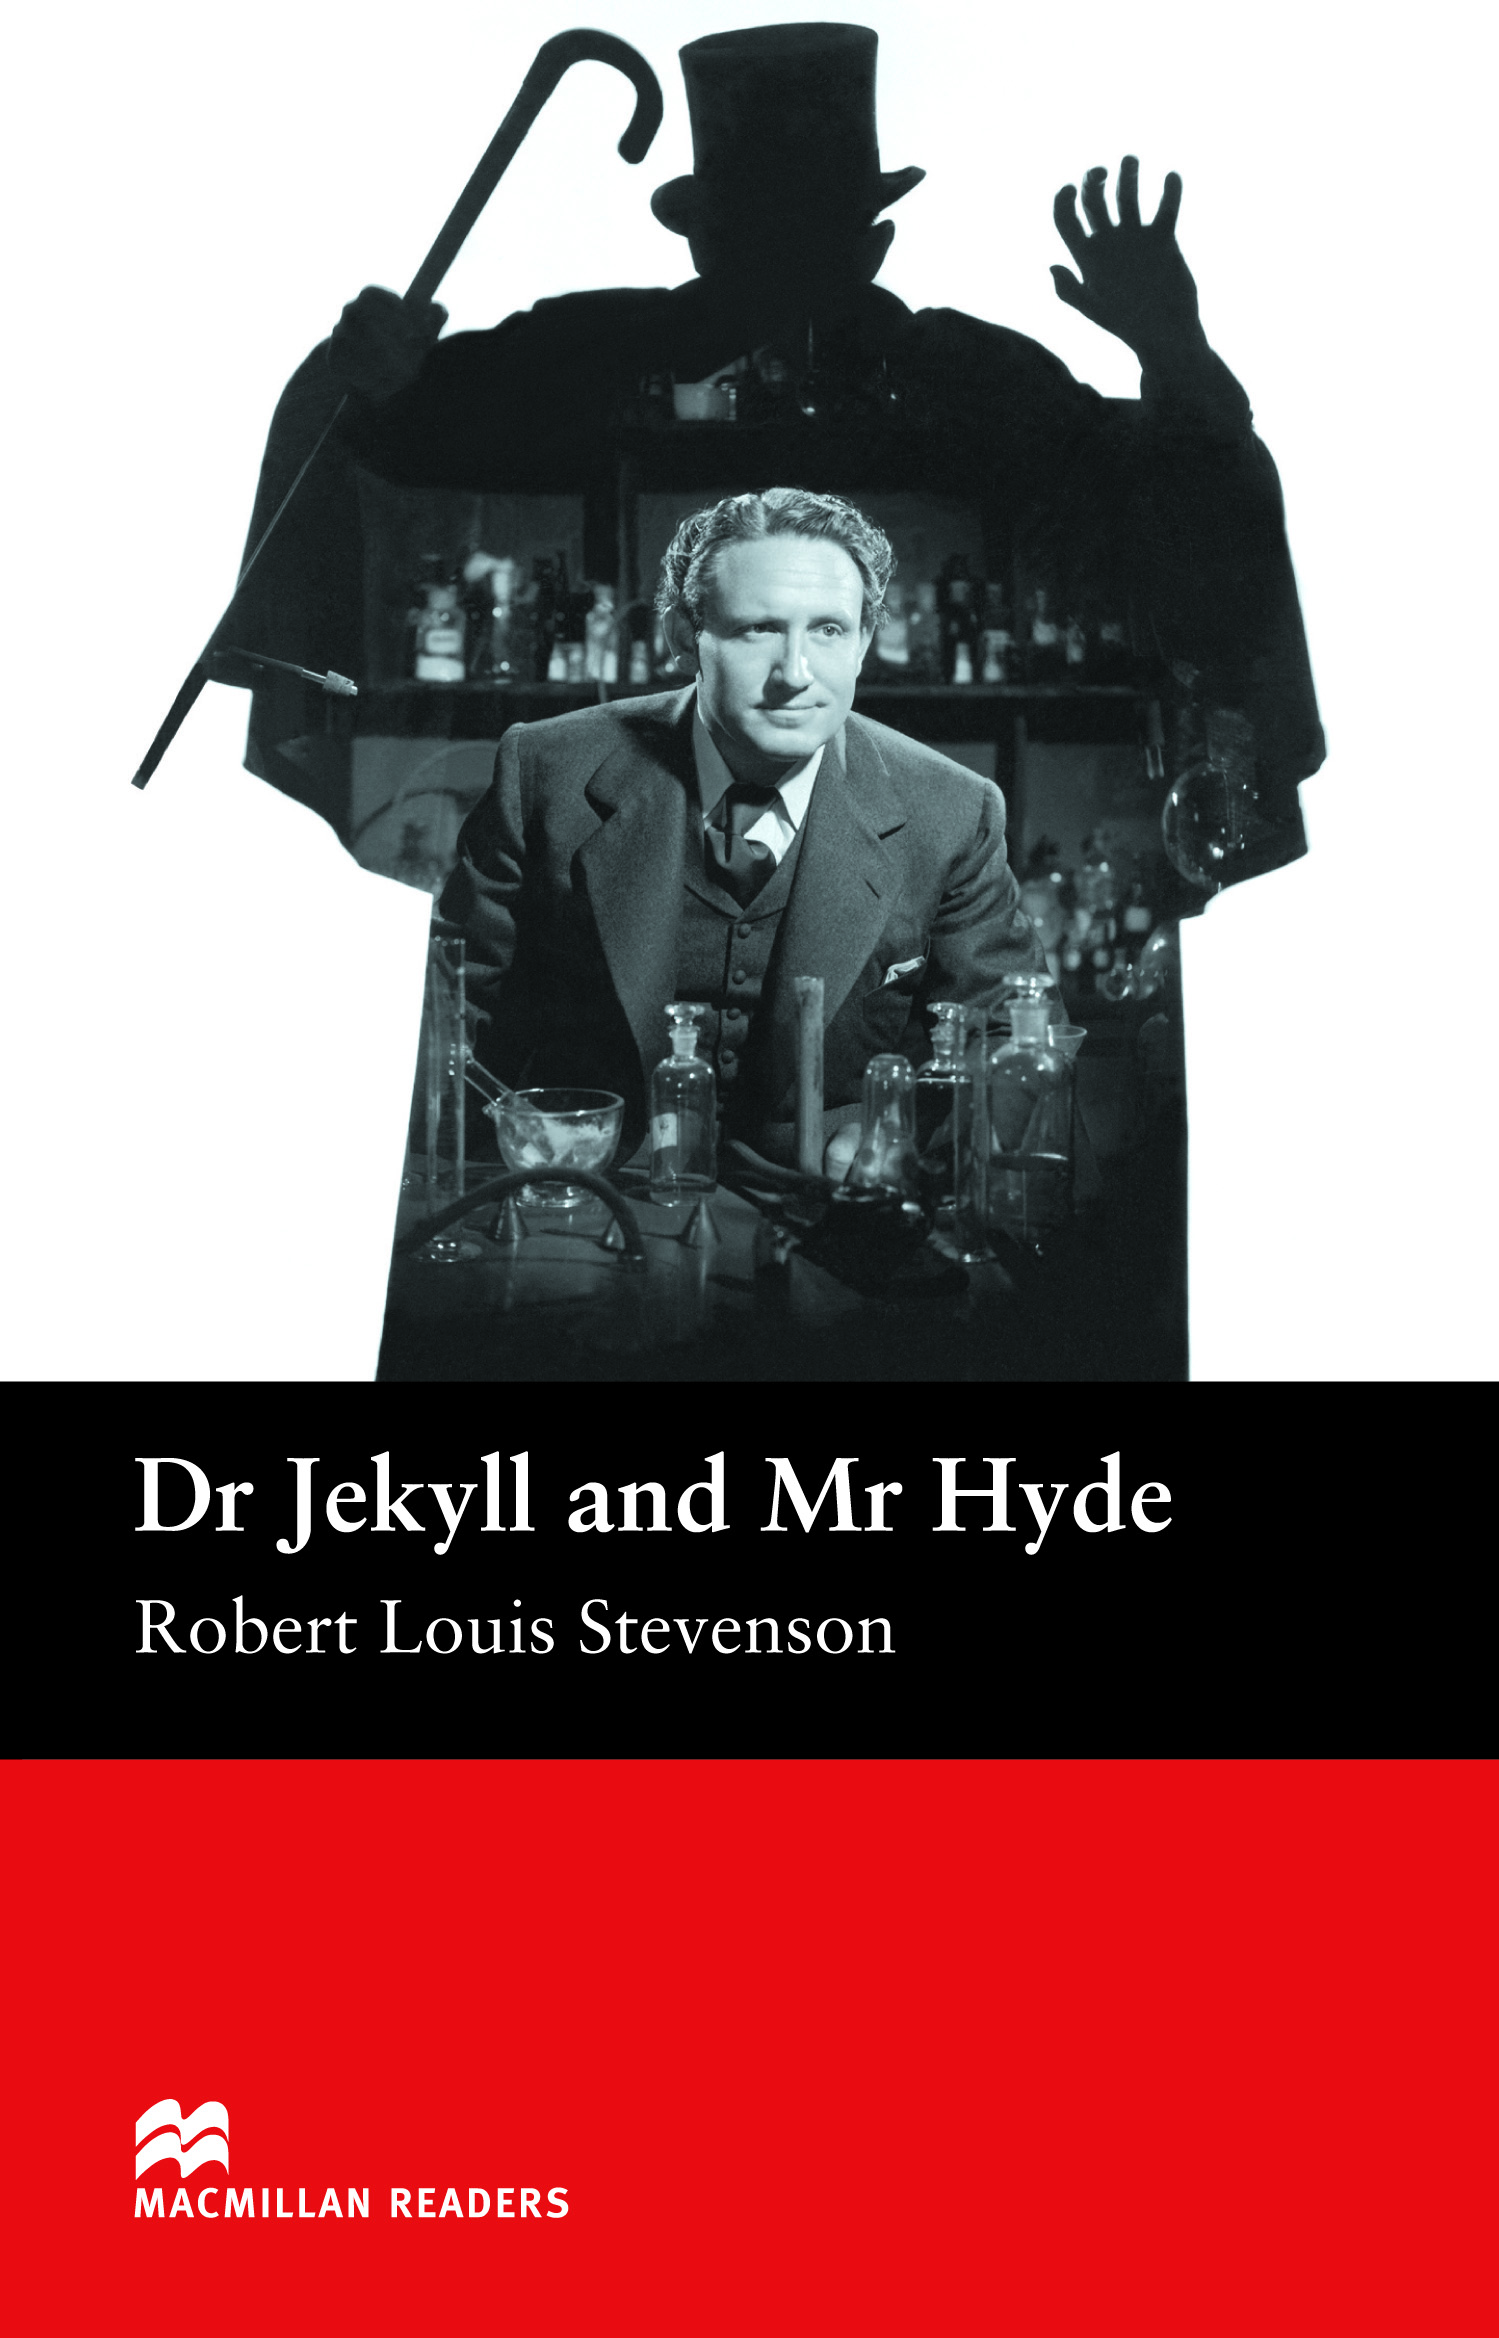 Macmillan Readers: Dr Jekyll and Mr Hyde